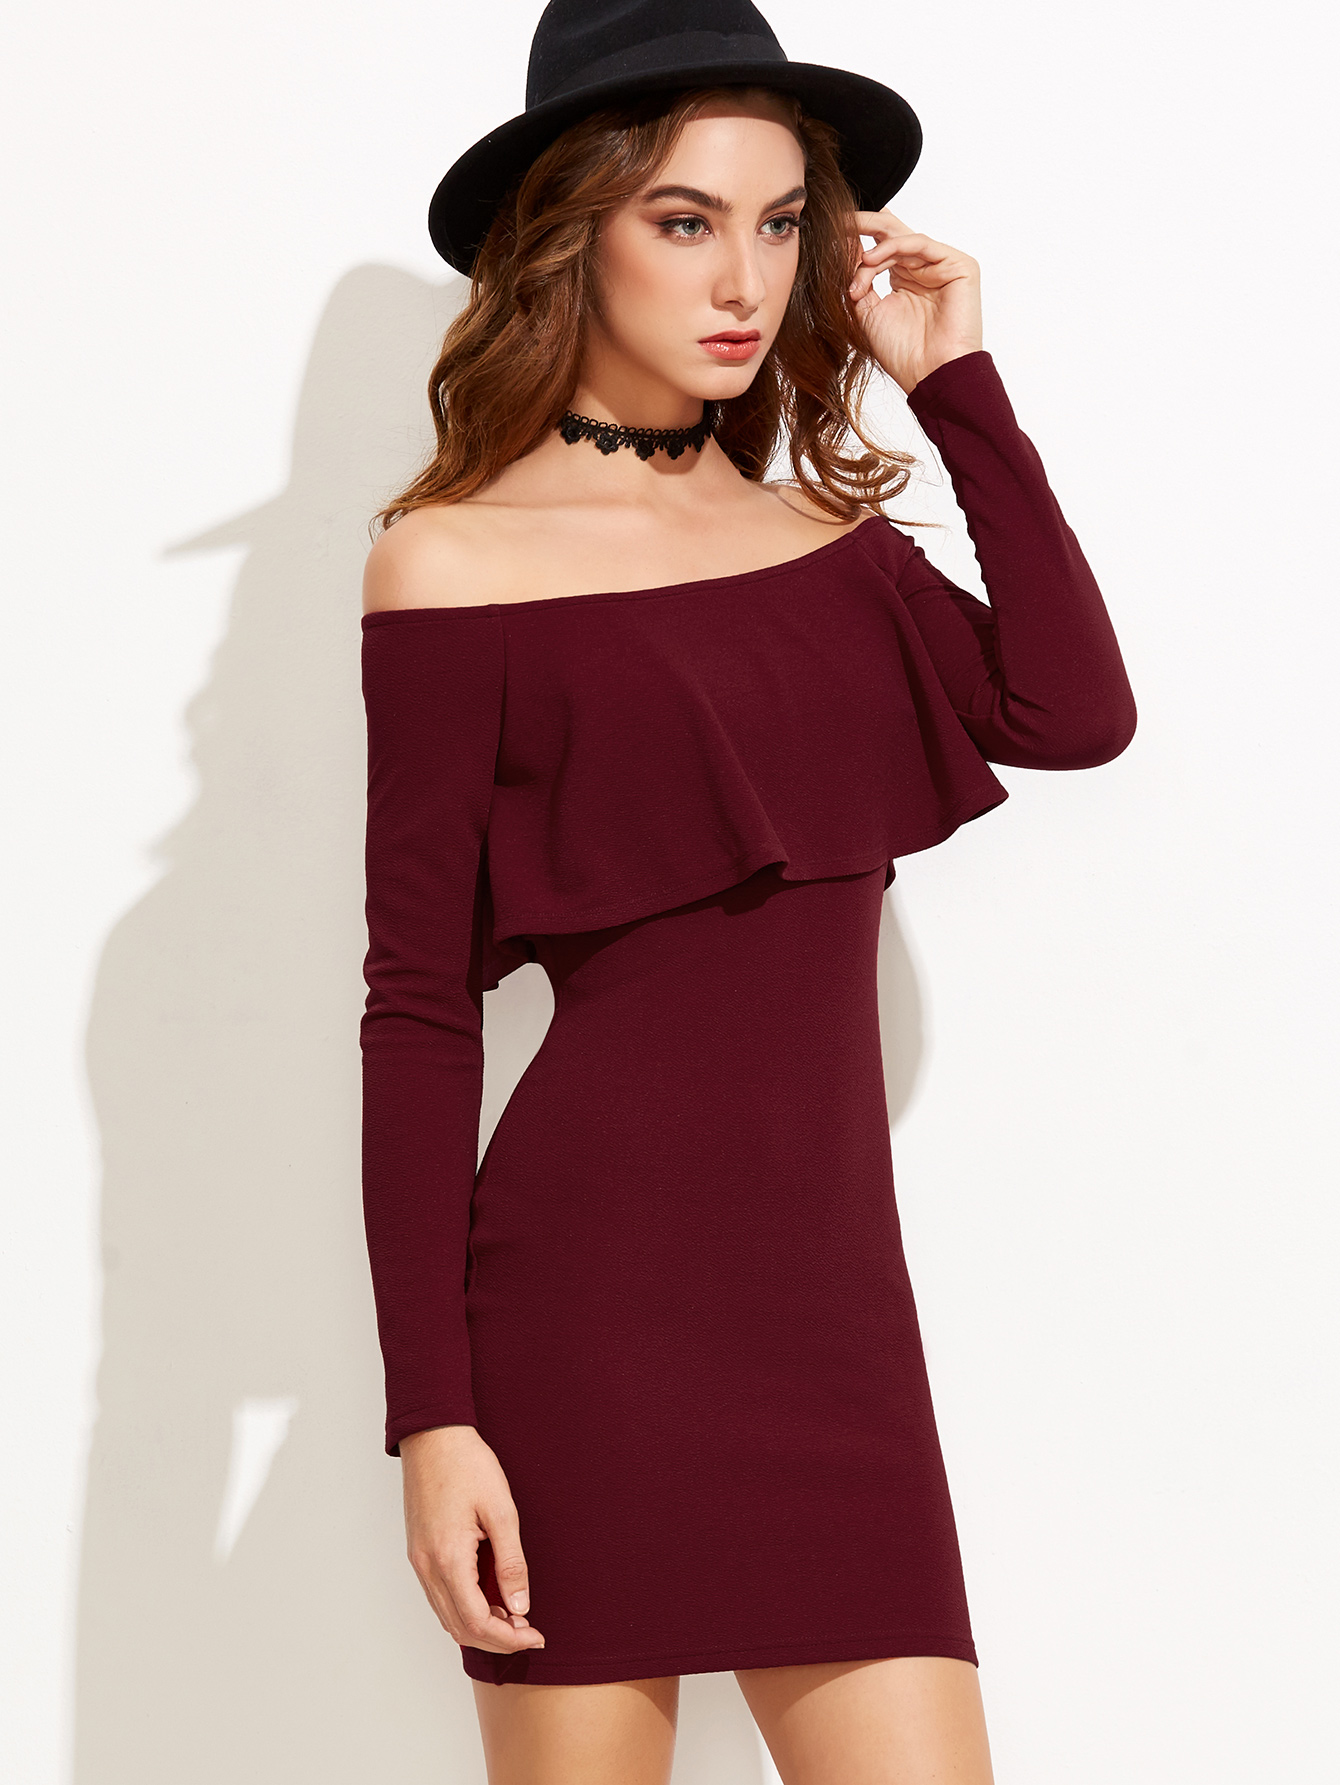 ae85fb8dc799 Women s Burgundy Mini Dress Ruffle Off Shoulder Bodycon Outfit Long Sleeve  XS-L - Thumbnail ...